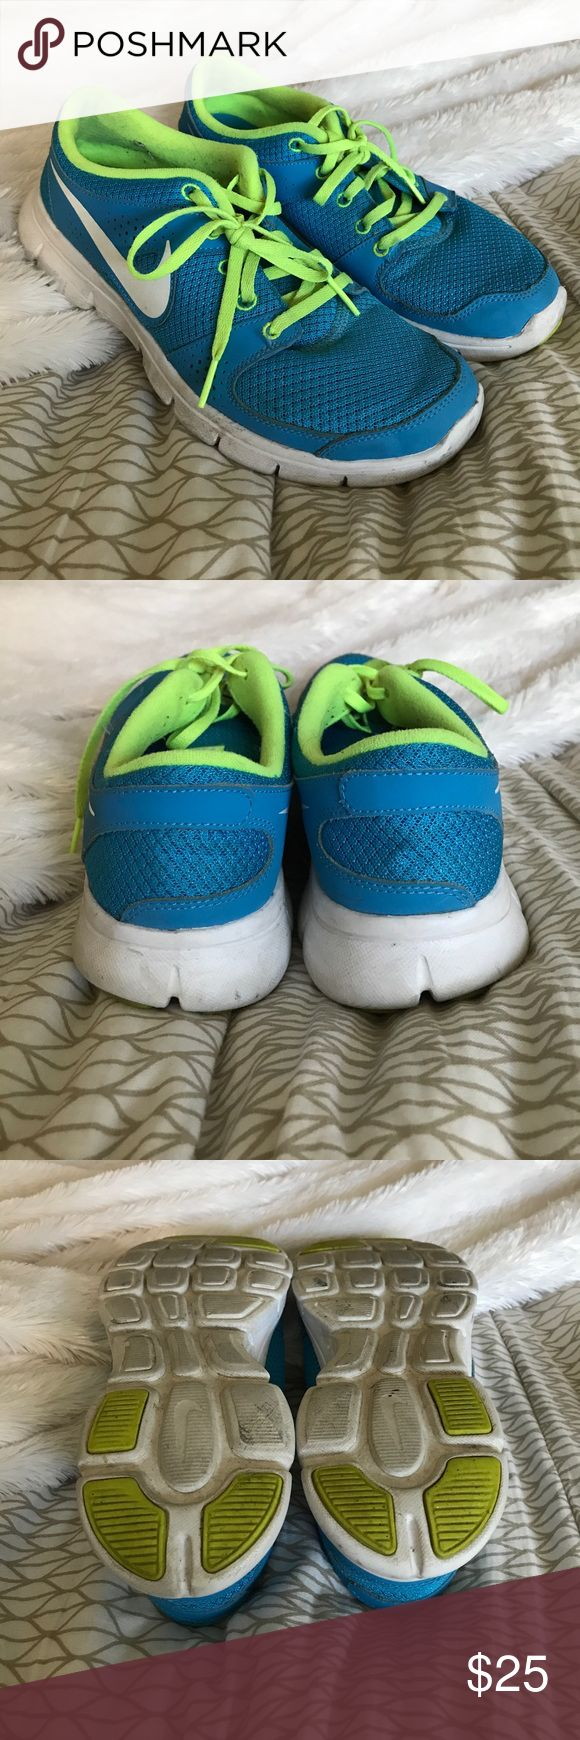 Nike Sneakers These Nikes are 100% authentic and have only been worn maybe three times. Excellent condition with no signs of wear or tear. Slight scuffing that can definitely come out in the wash! Very vibrant!  Always remember when shopping within my closet:  😊Always open to reasonable offers ♥️20% off all bundles 🚫I do not trade  💸I only sell on posh  🗣I am always open to questions and will      respond quickly 💌Since I am a student it will take approx      3-4 days for me to ship…